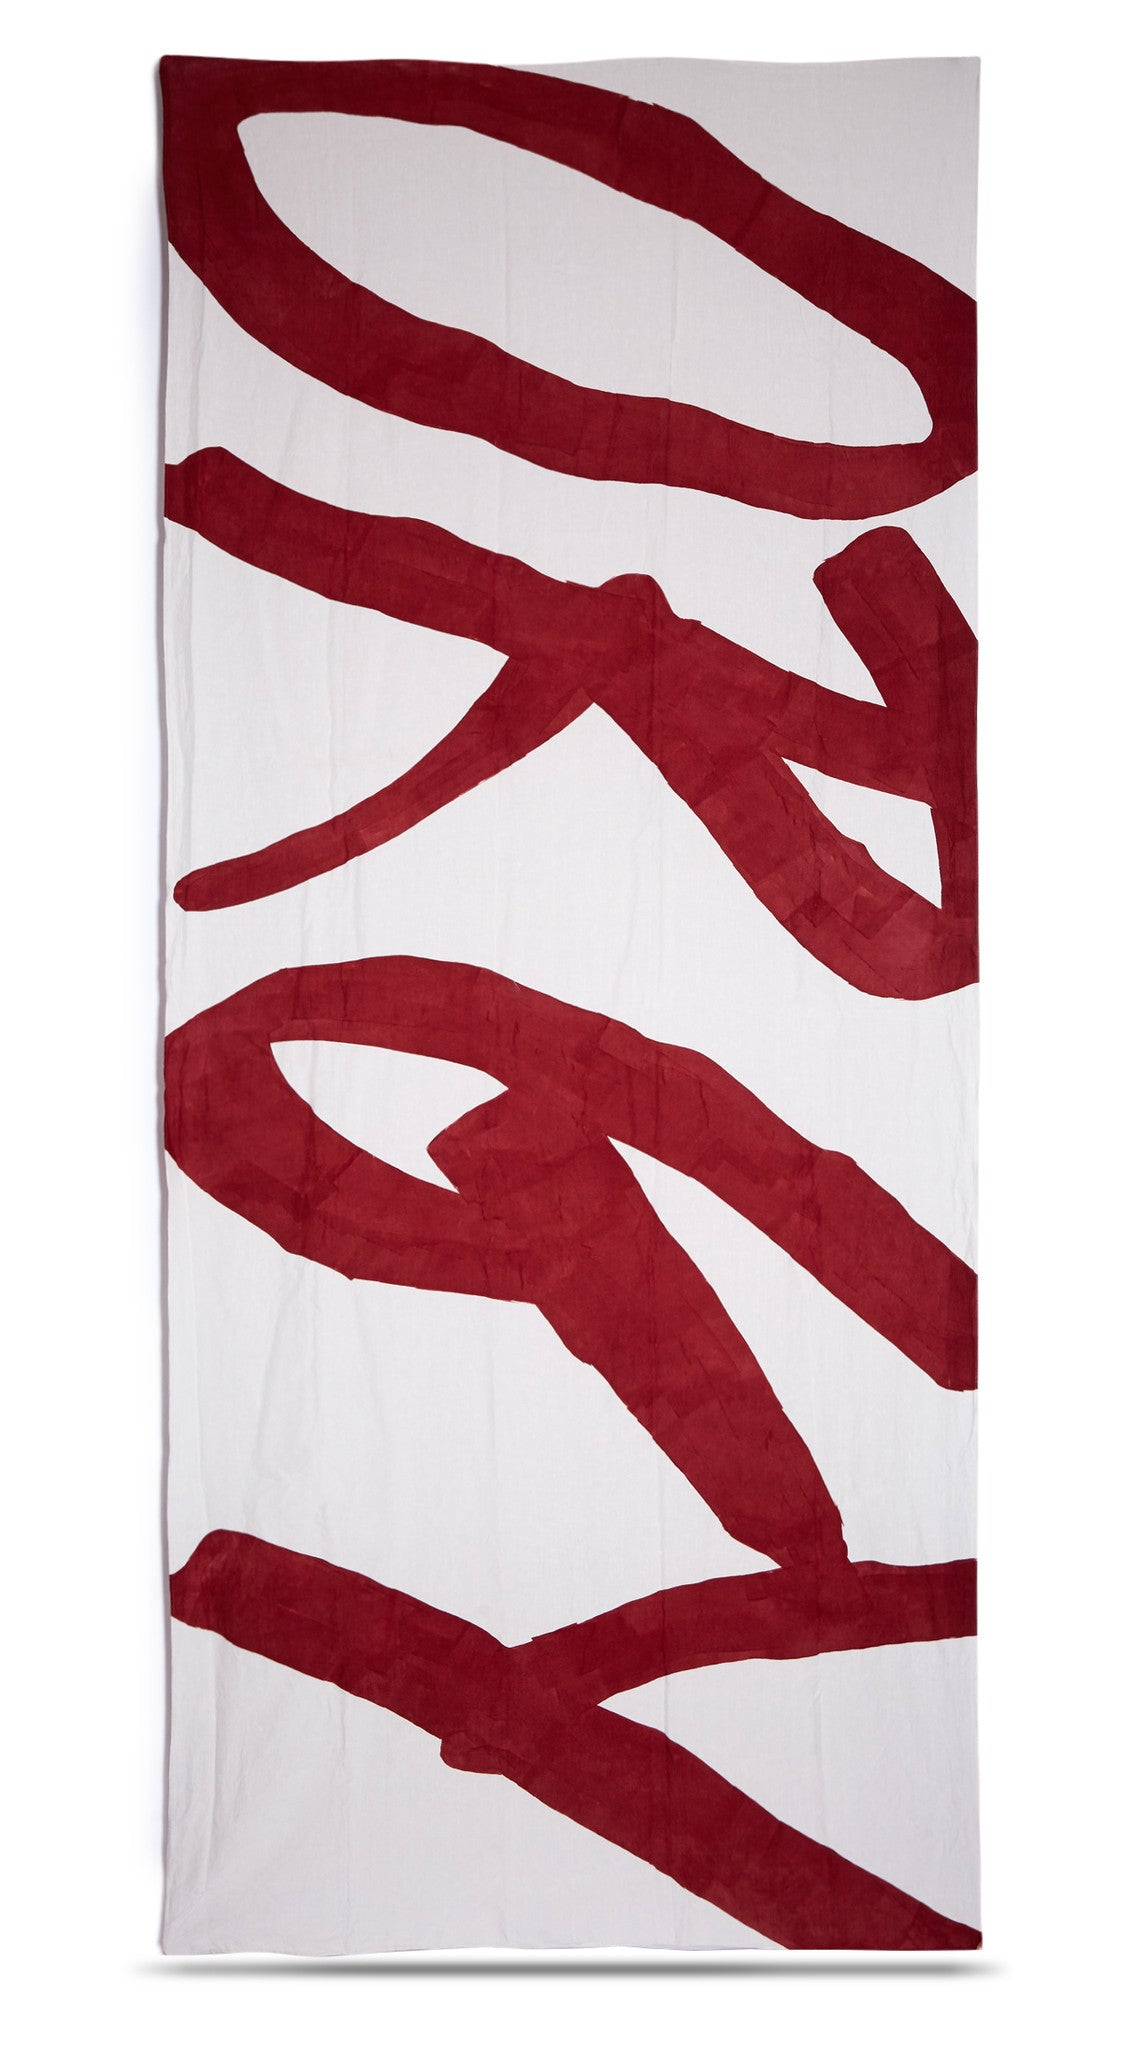 Orgy Linen Tablecloth in Claret Red